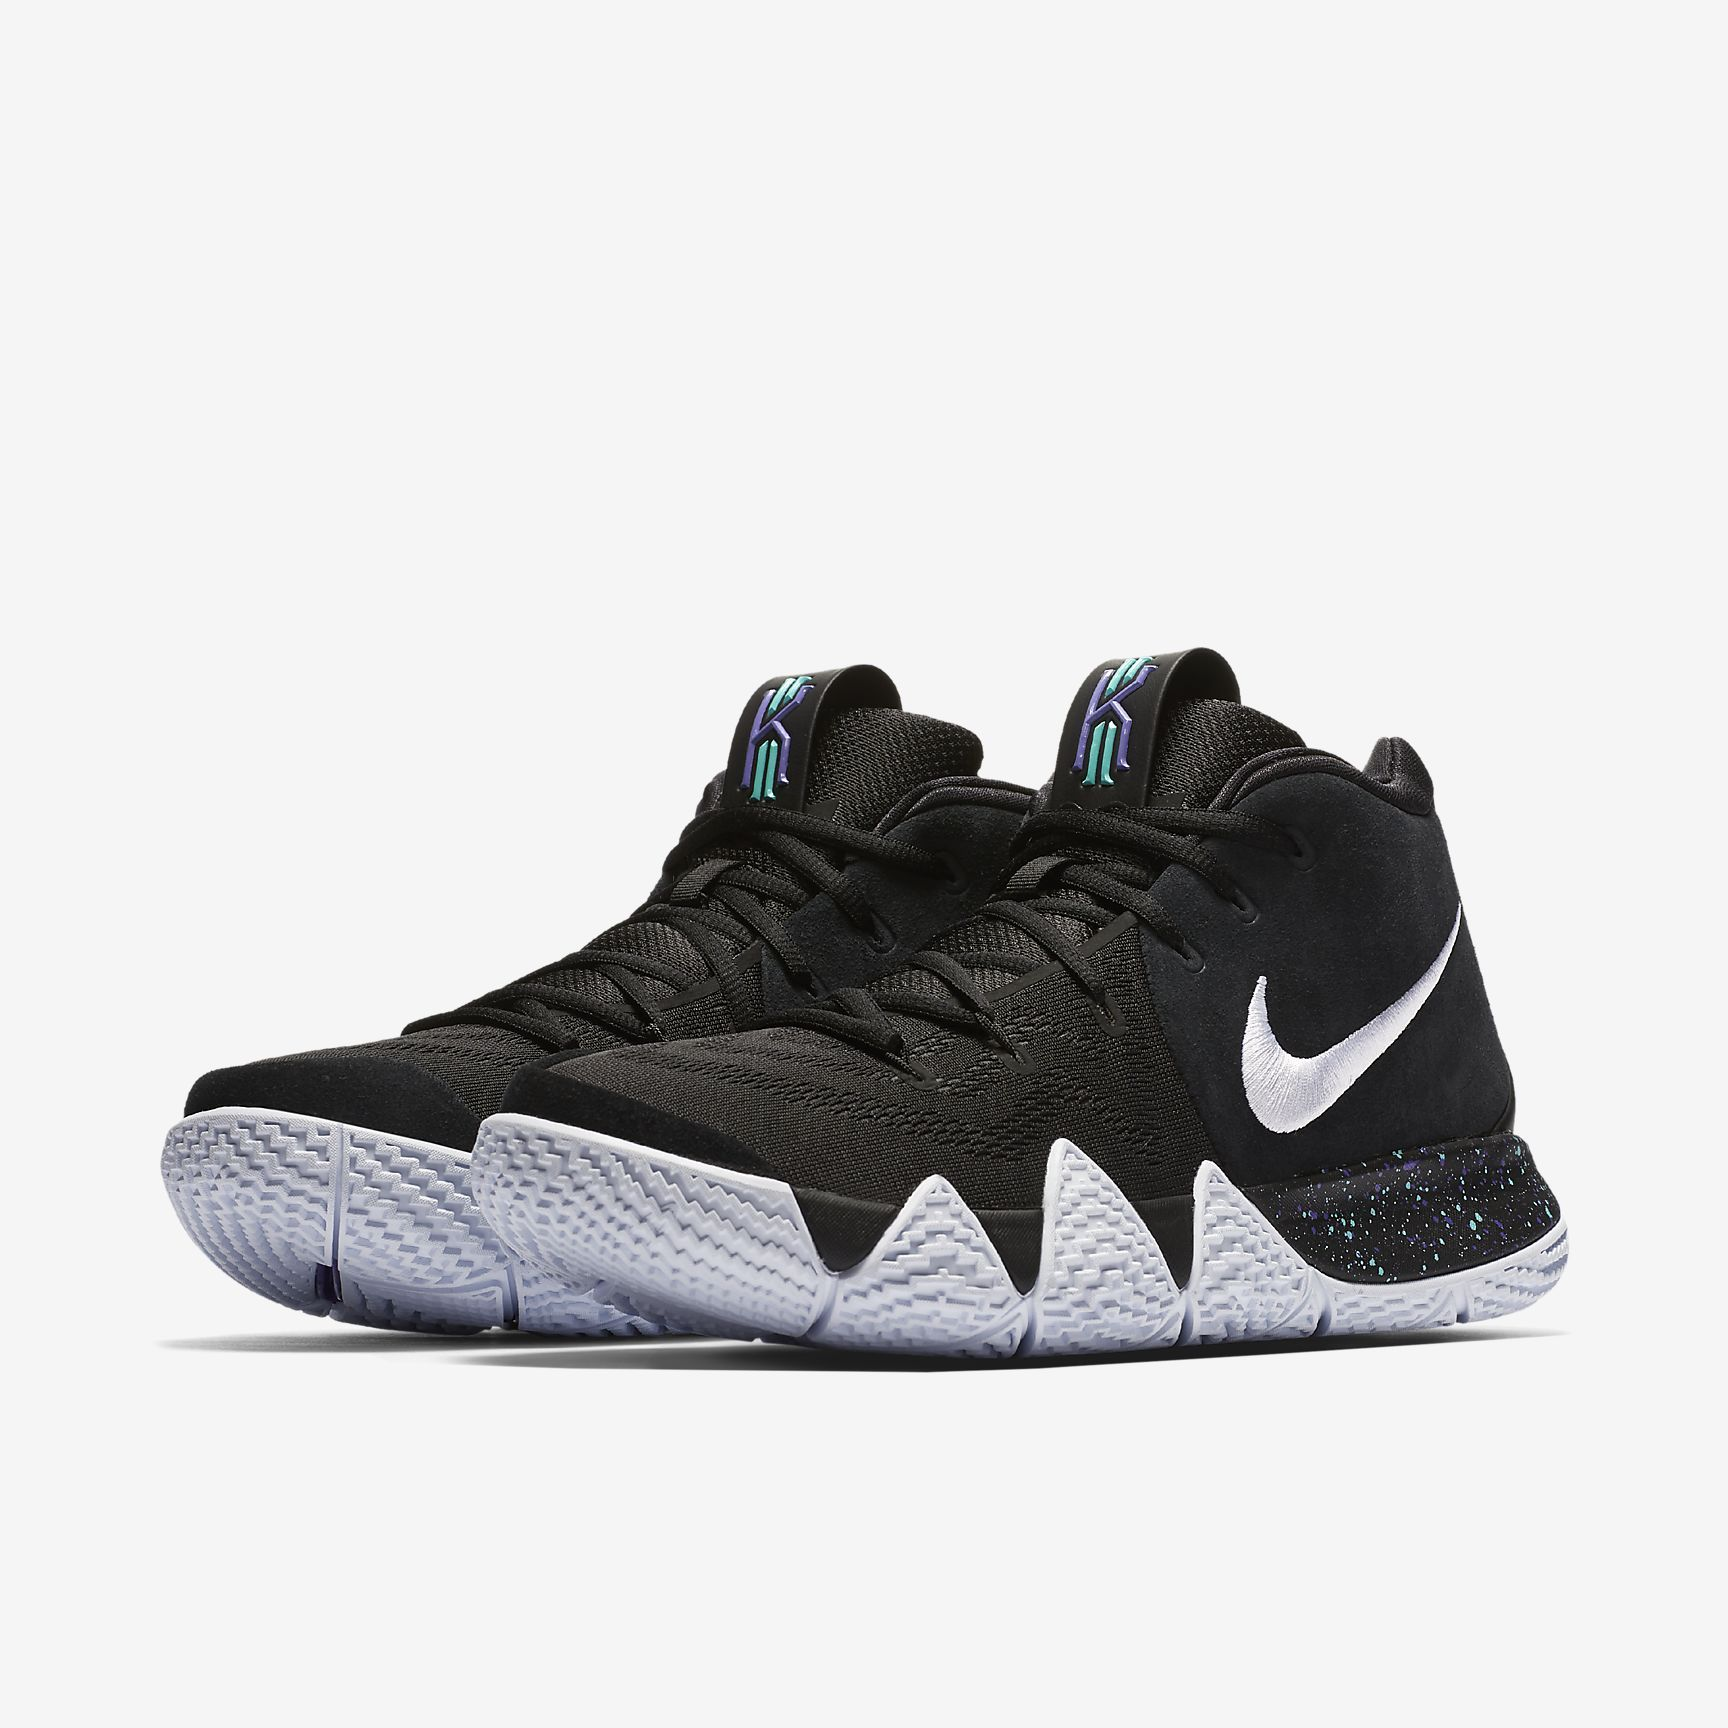 quality design c65a1 43e23 Kyrie 4 Basketball Shoe